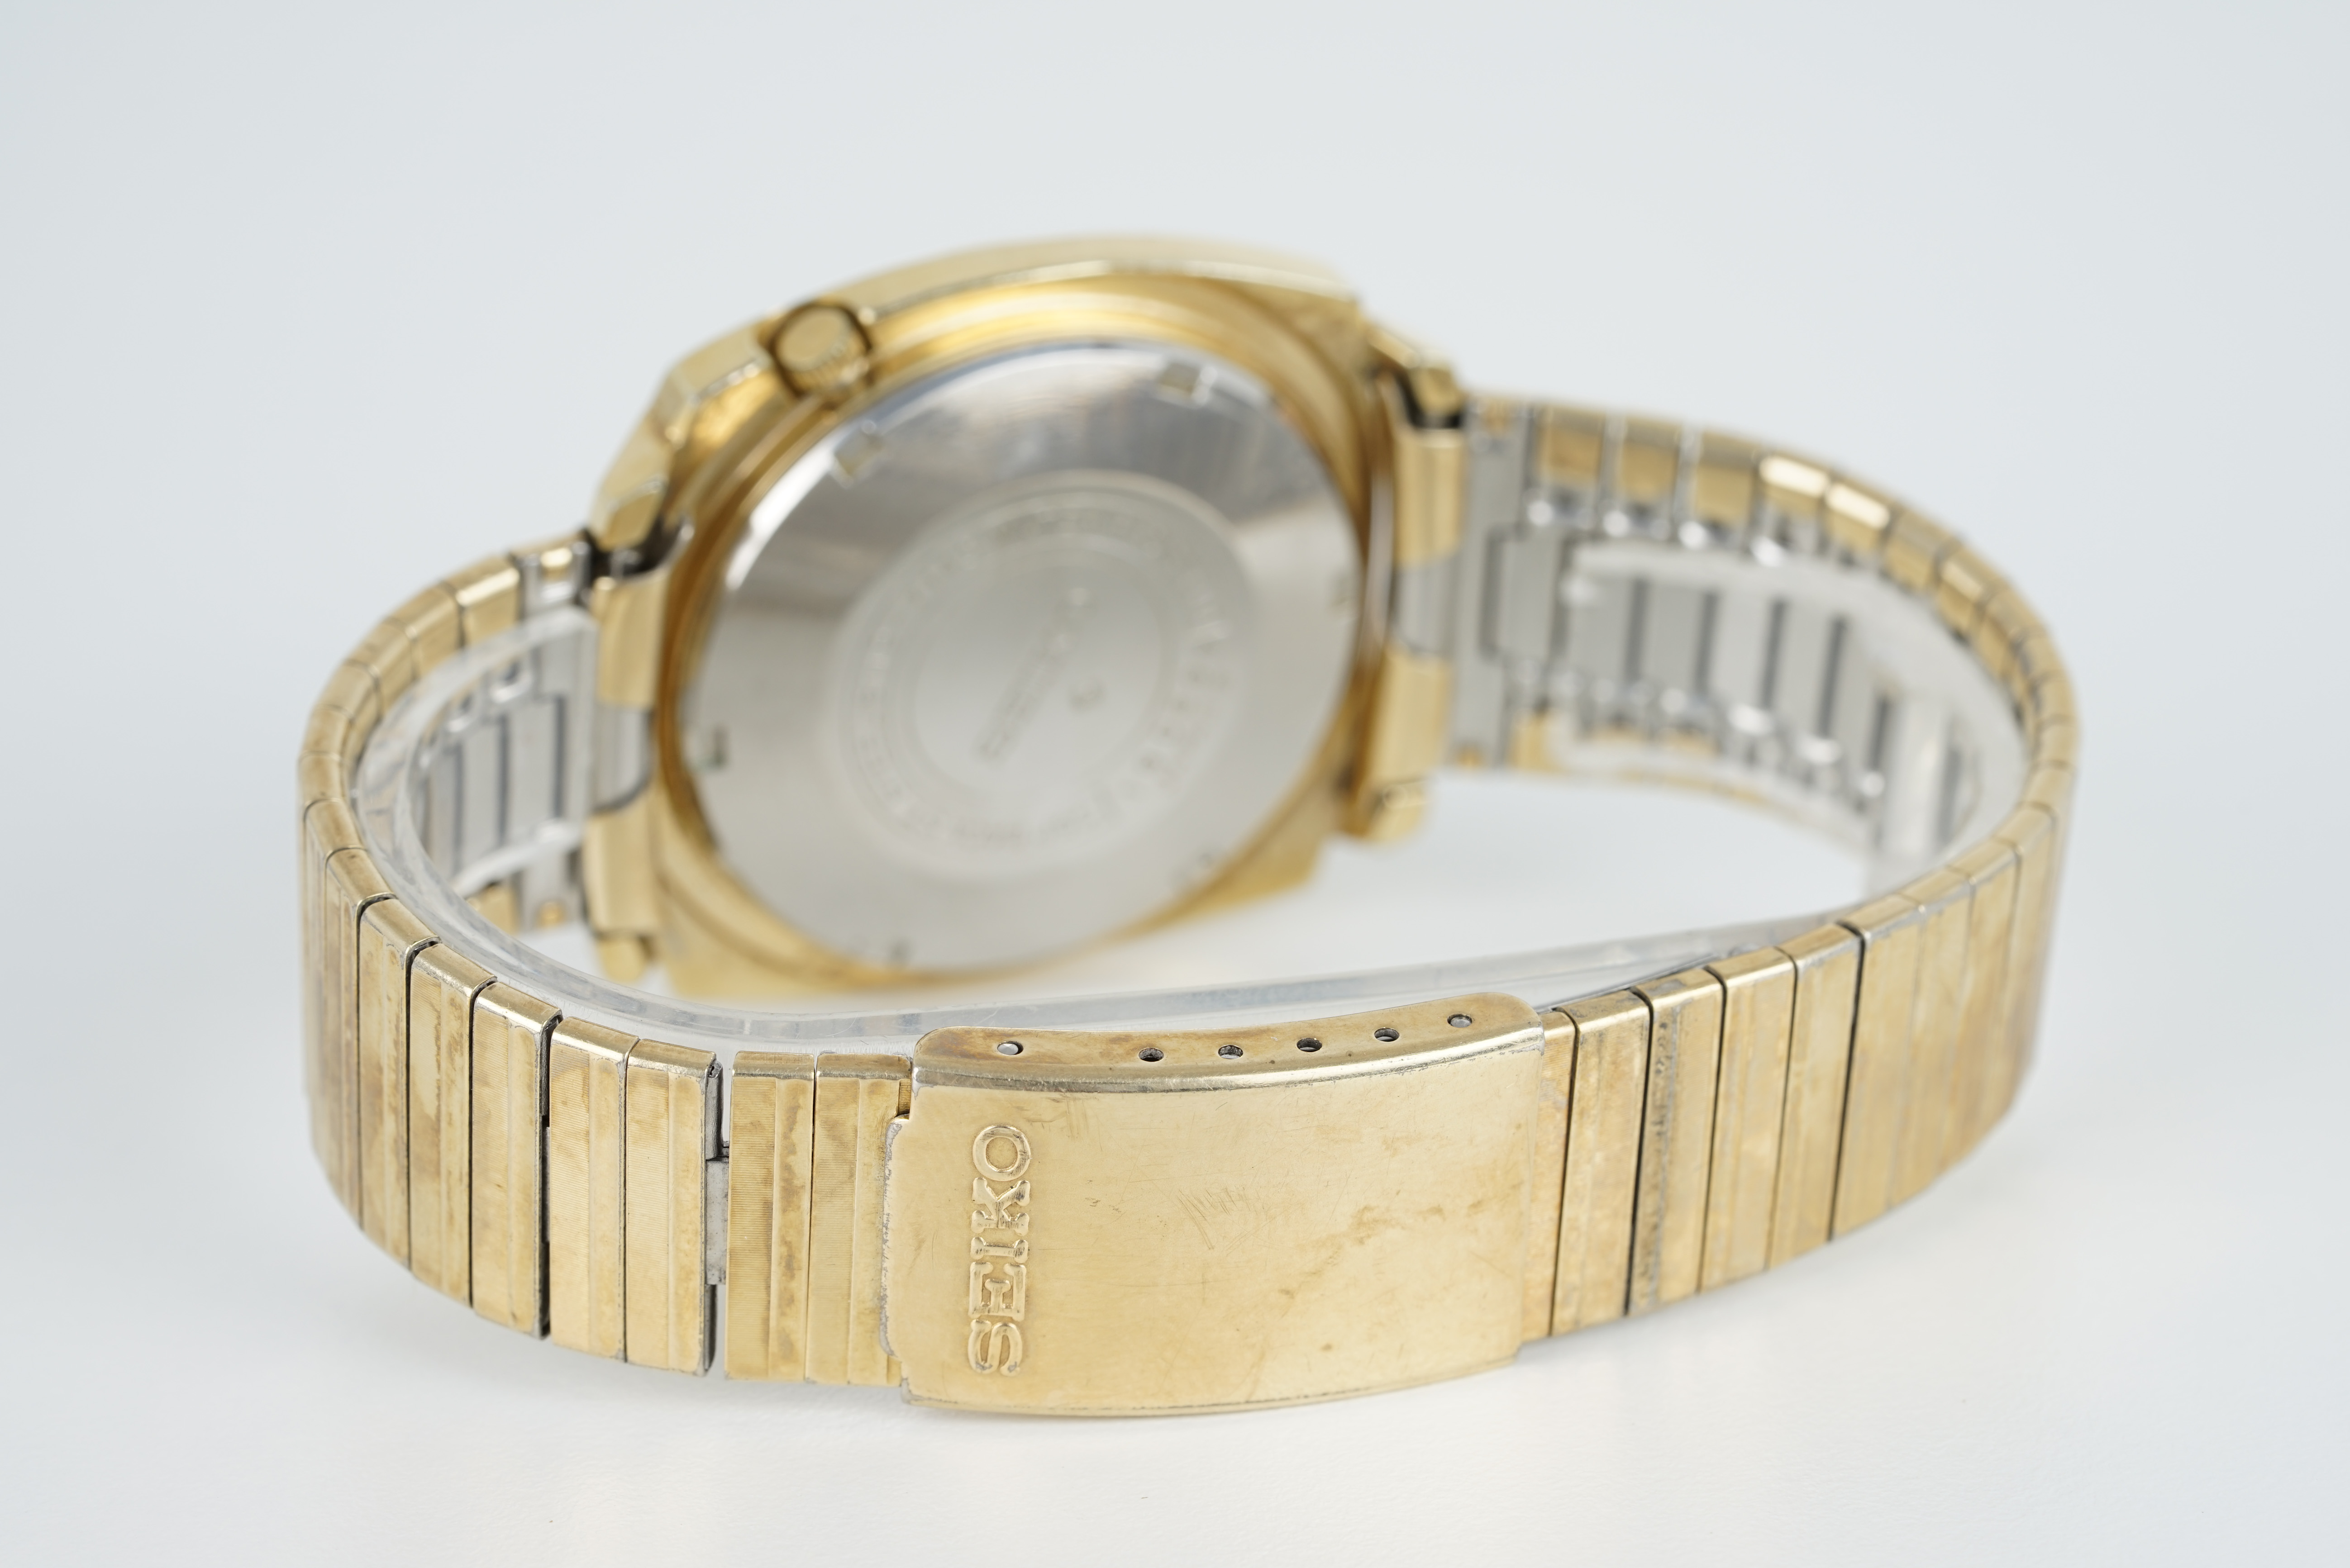 GENTLEMENS SEIKO 5 AUTOMATIC DAY DATE WRISTWATCH, circular silver dial with block hour markers and - Image 2 of 2